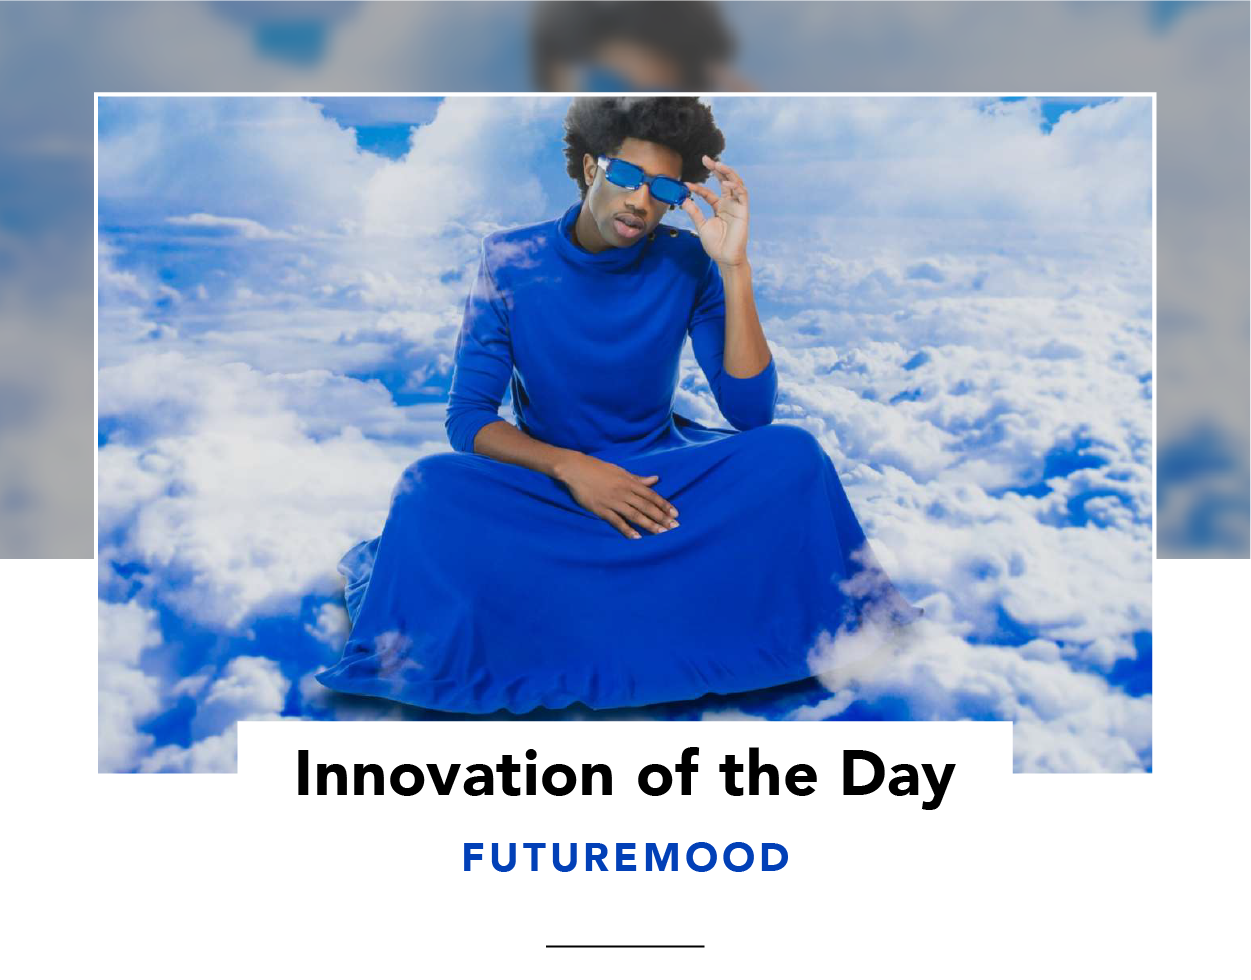 FUTUREMOOD-04